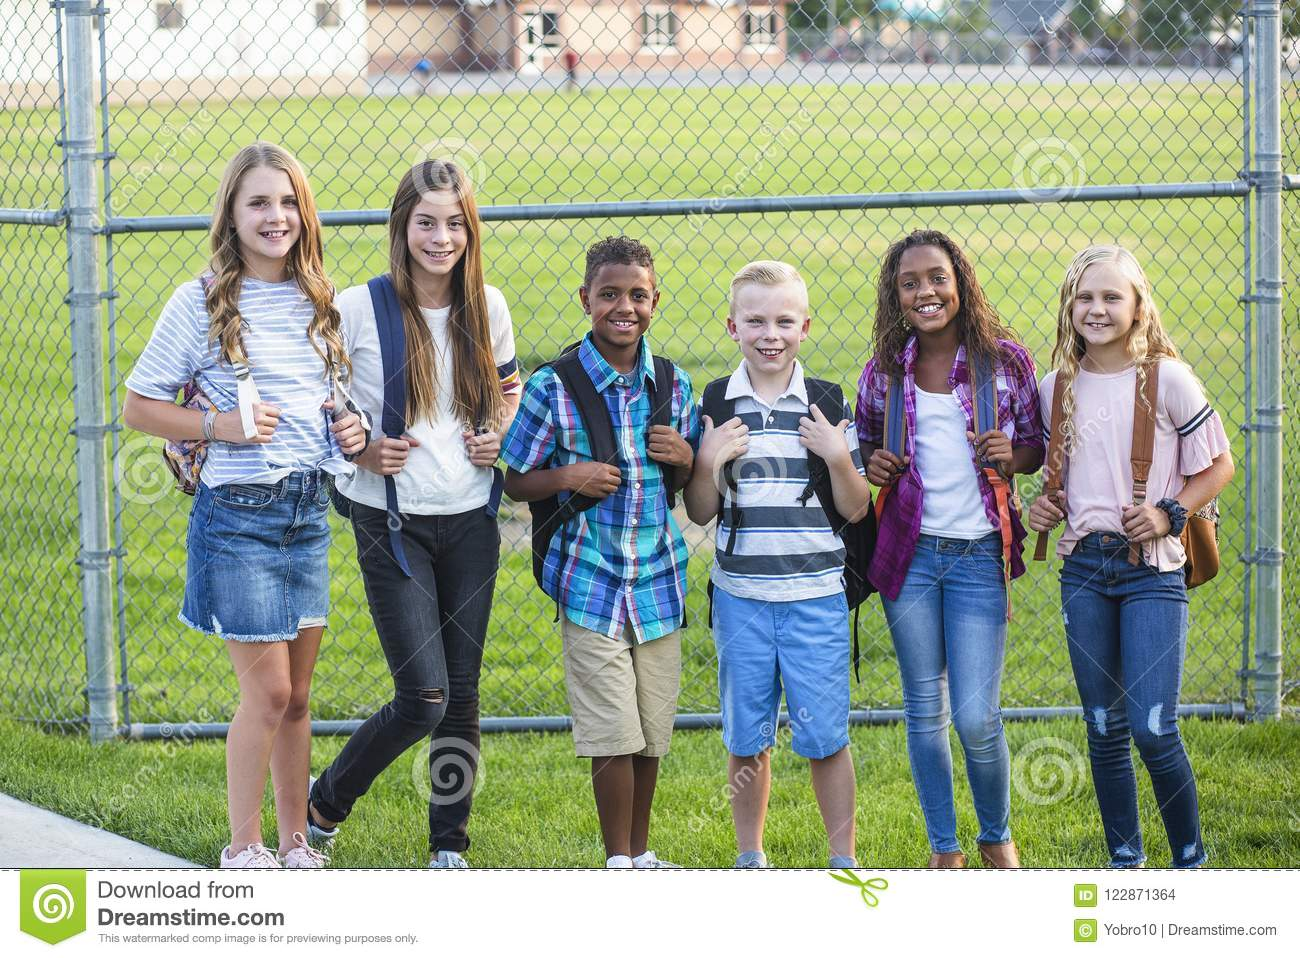 Group of school kids smiling while standing in a elementary school playground